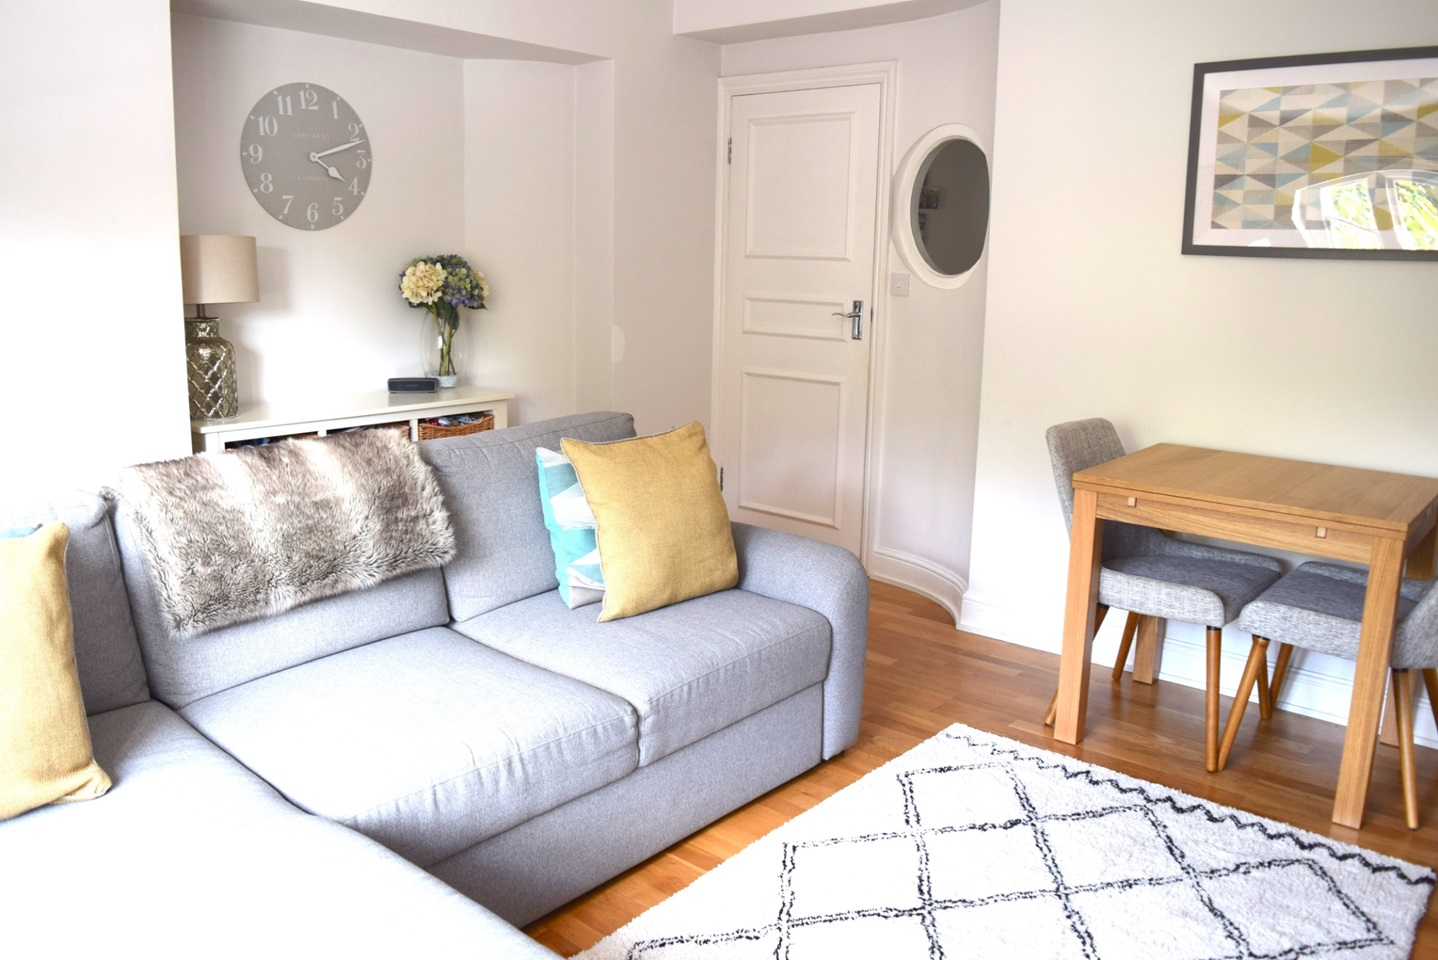 London - 2 Bed Flat, Clapham Common South Side, SW4 - To ...